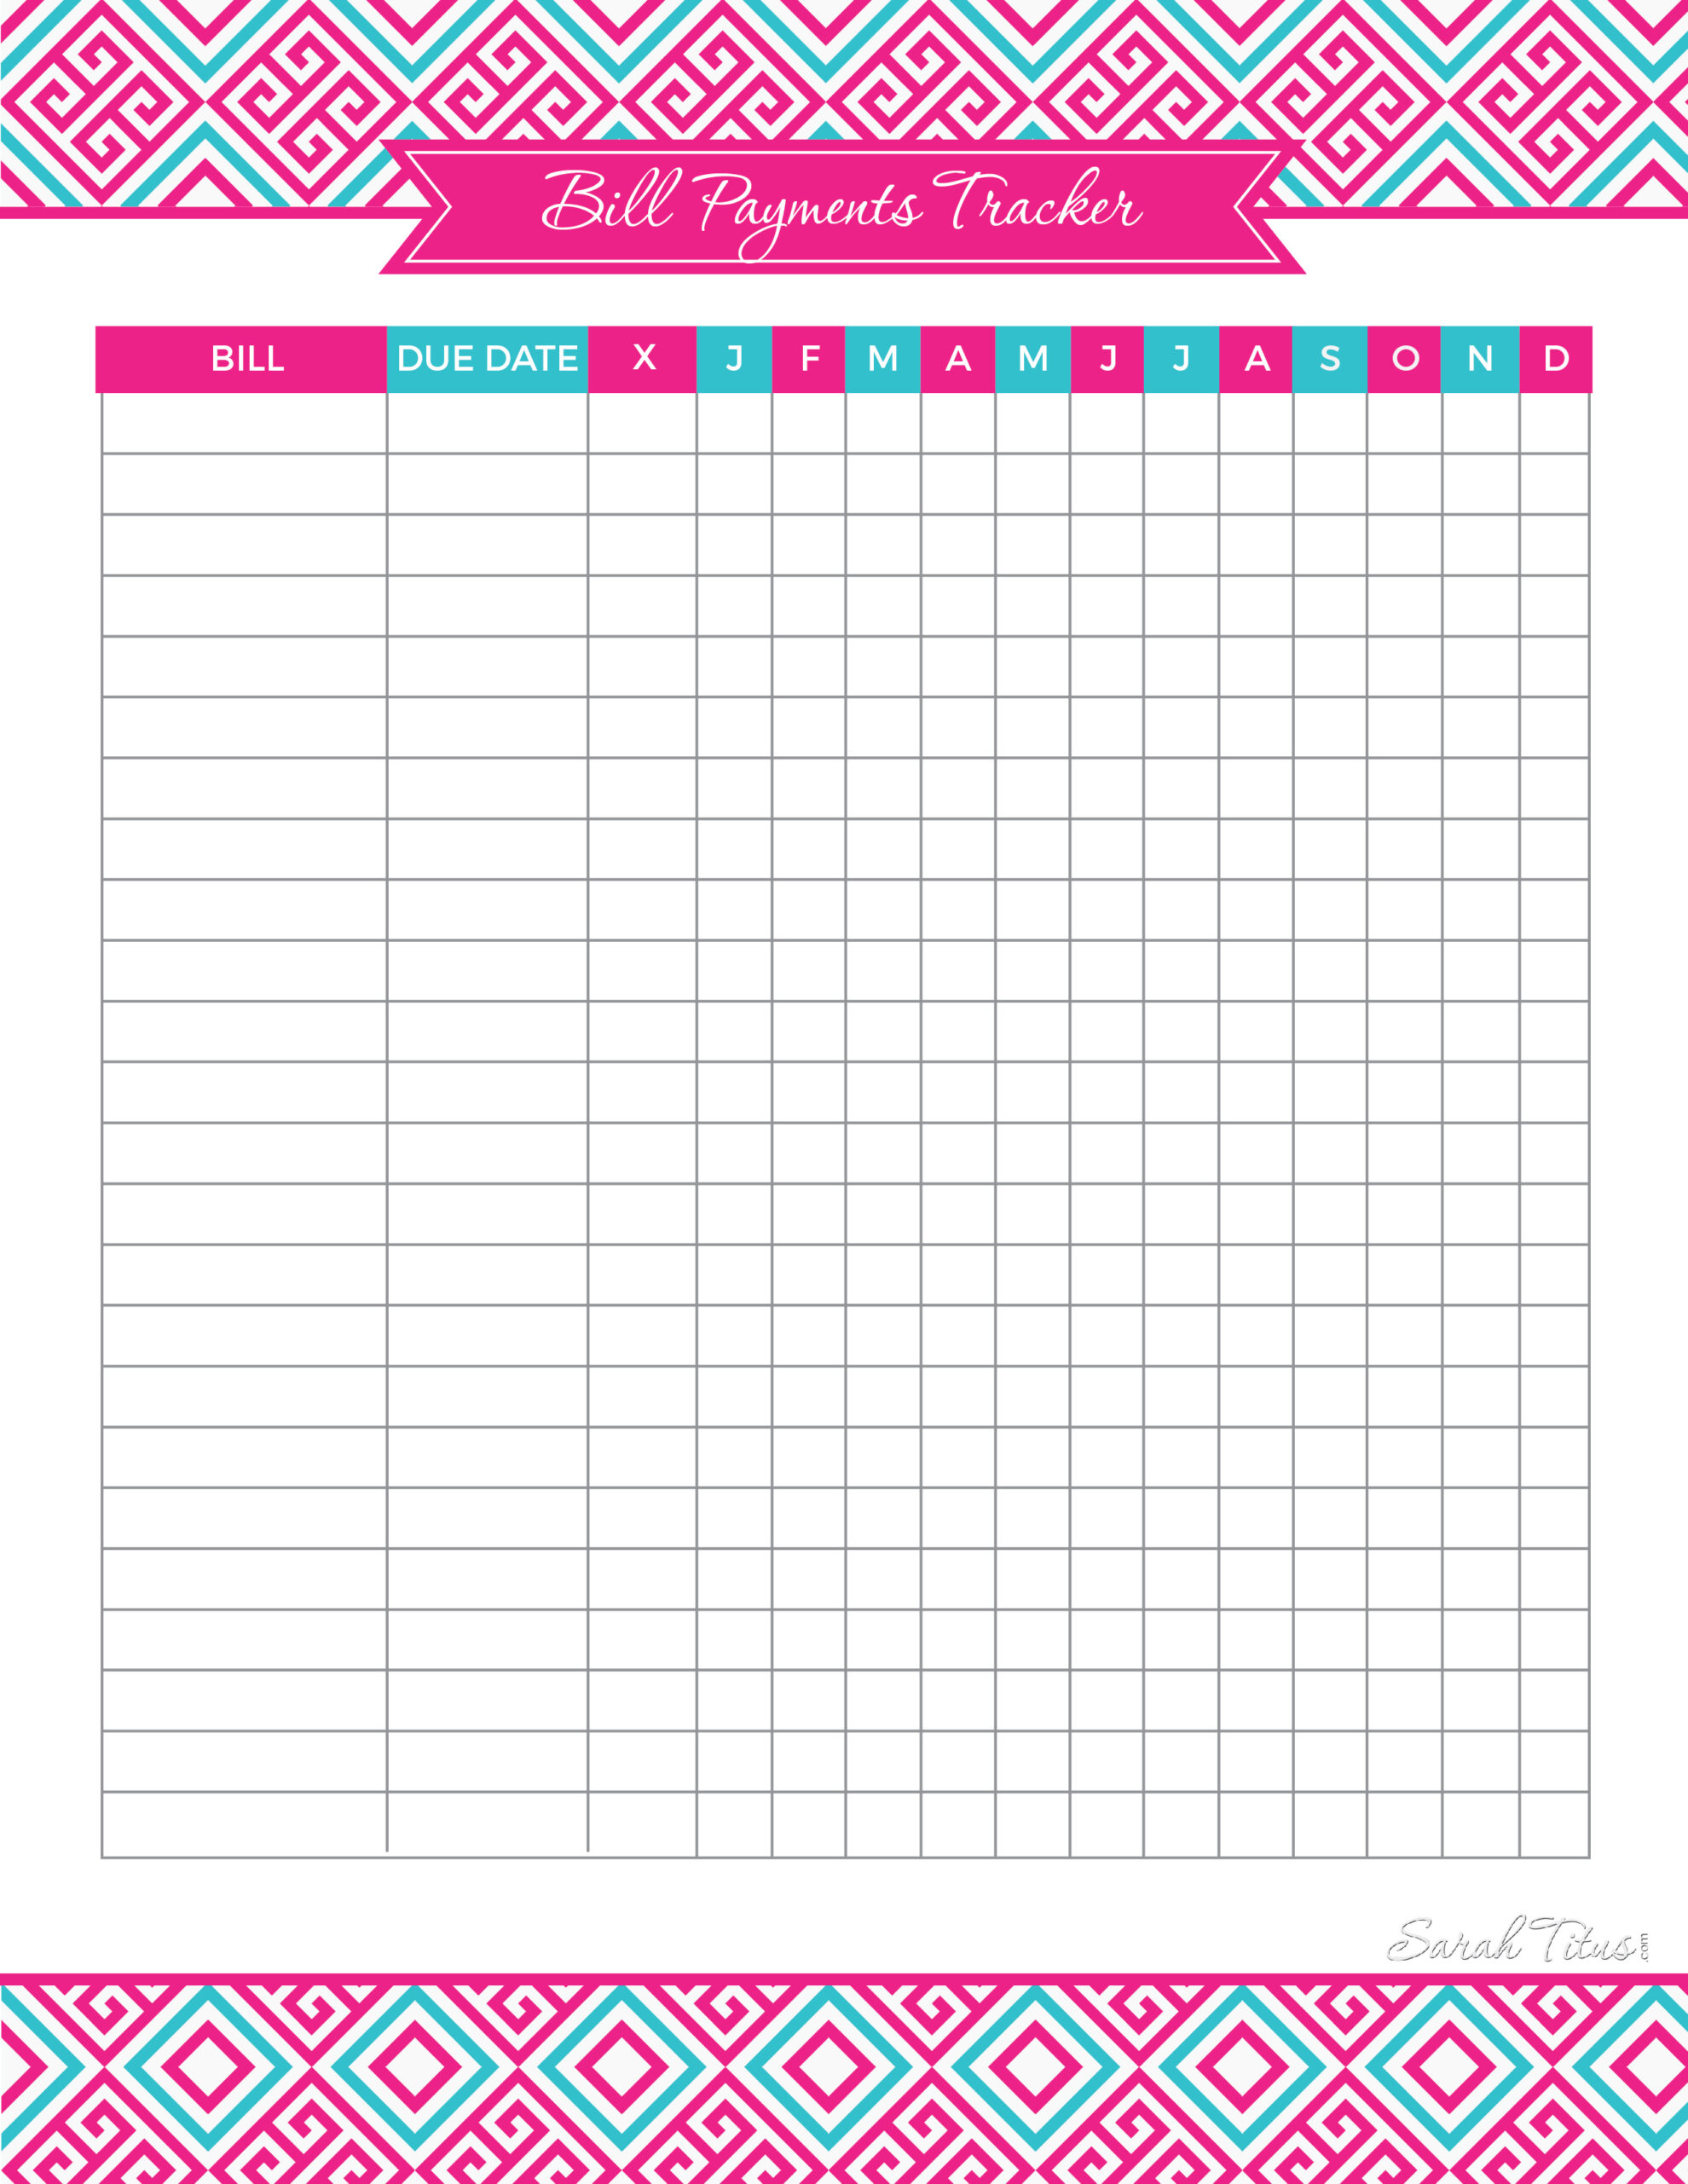 Bill Payments Tracker Printable